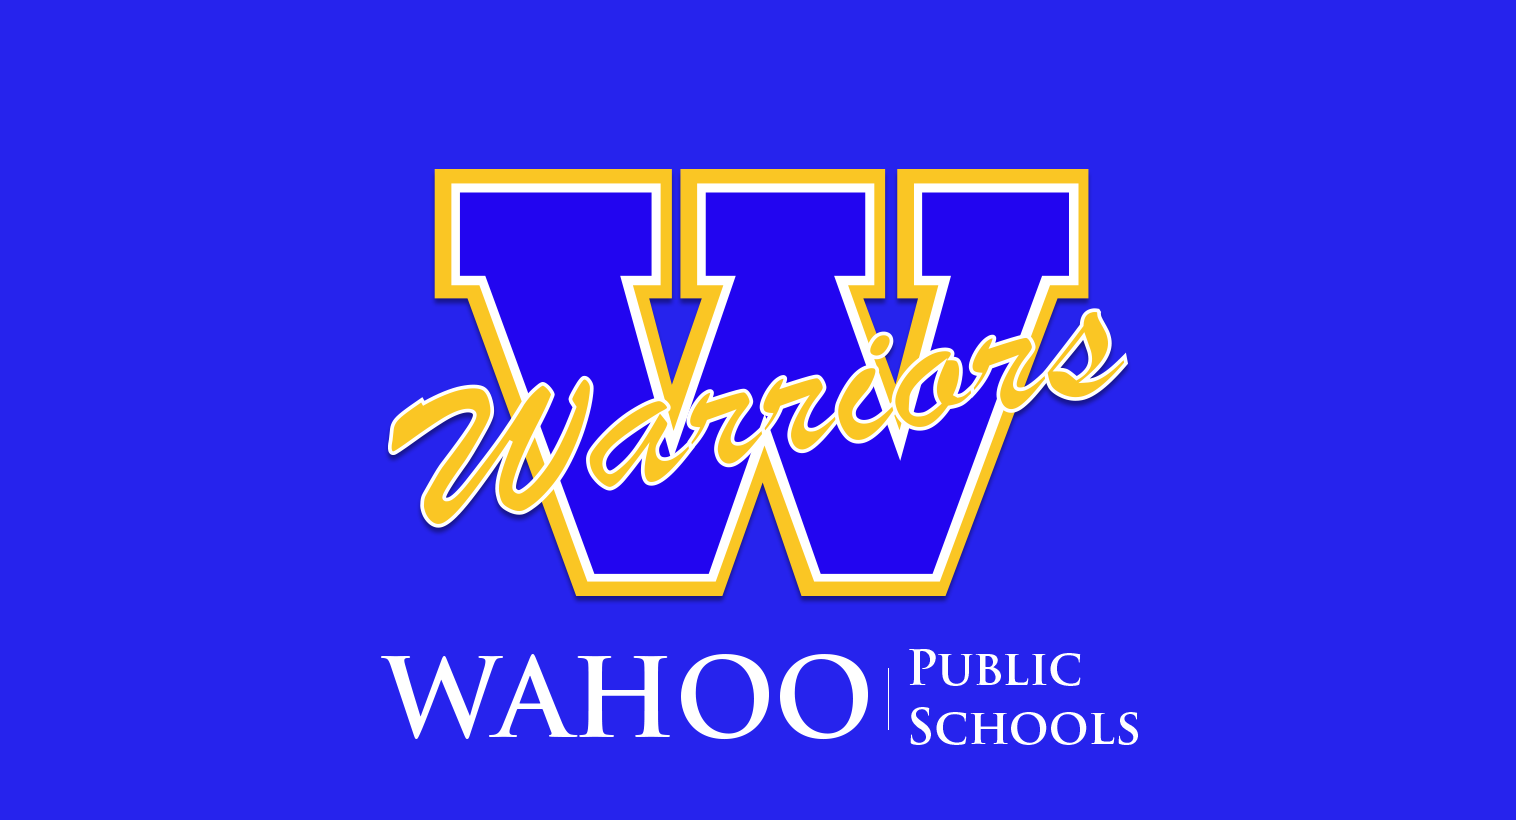 Wahoo Public Schools - Tobacco in the News